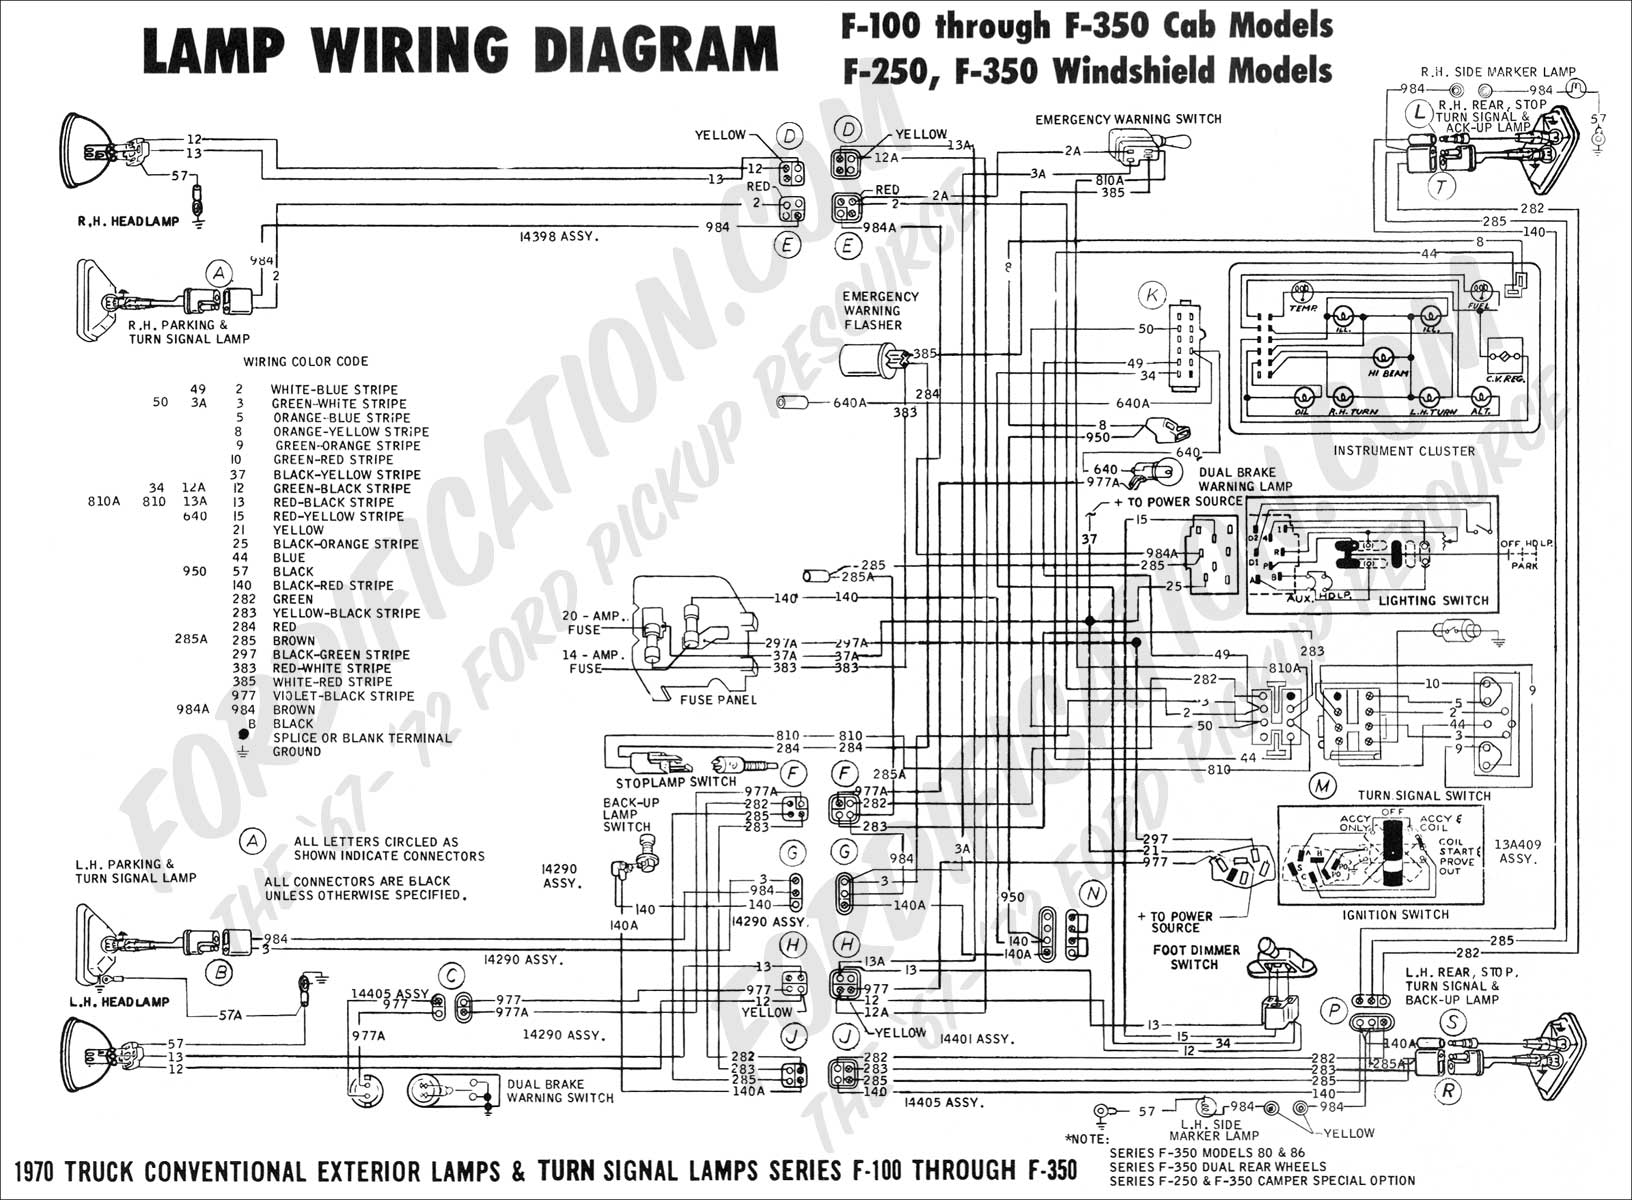 wiring diagram_70ext lights01 ford f250 wiring diagram online f250 trailer wiring diagram 1999 f250 trailer wiring harness at gsmx.co